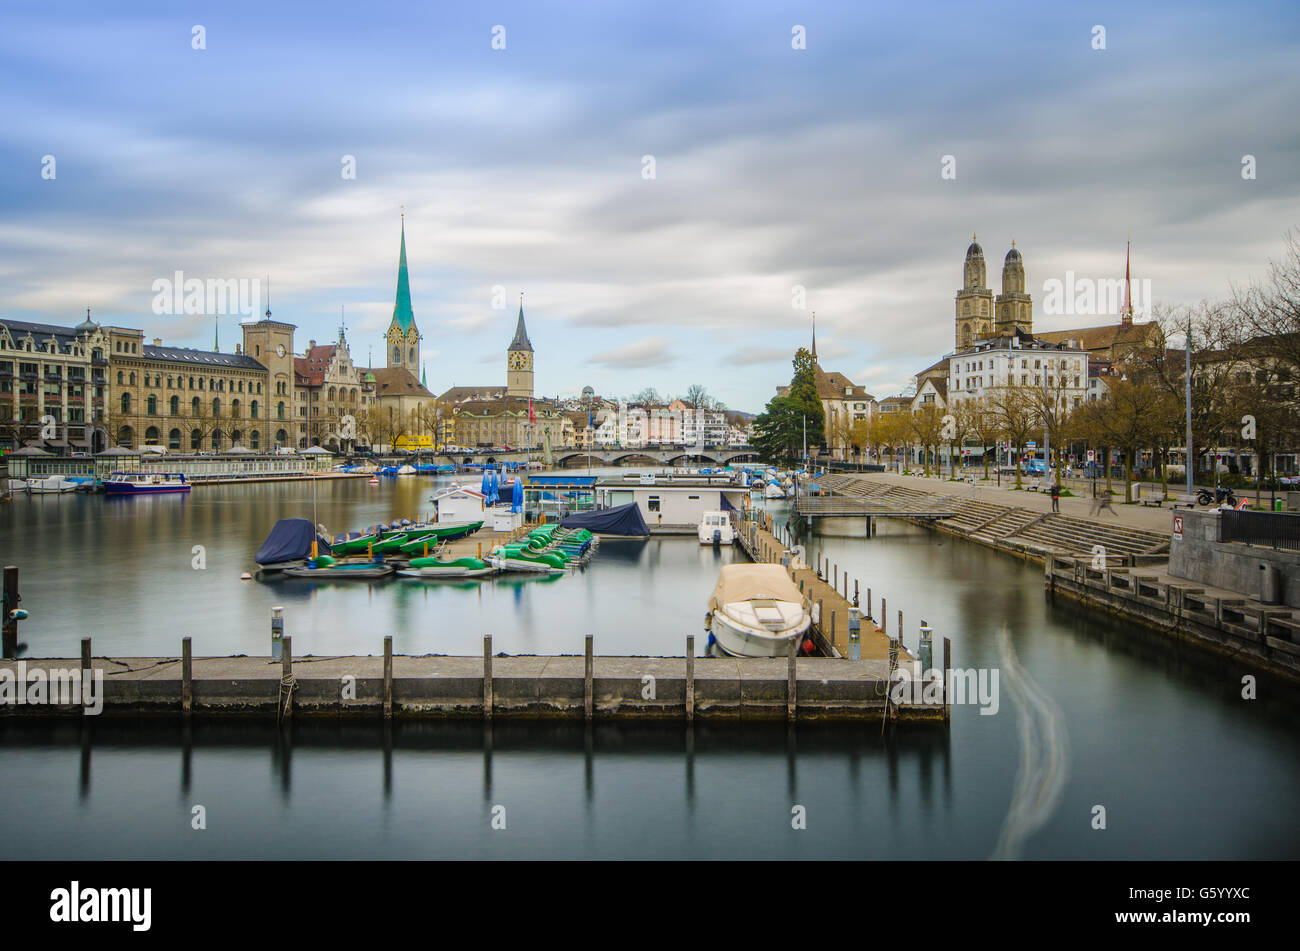 Looking into downtown Zurich along the Limmatquai - Stock Image